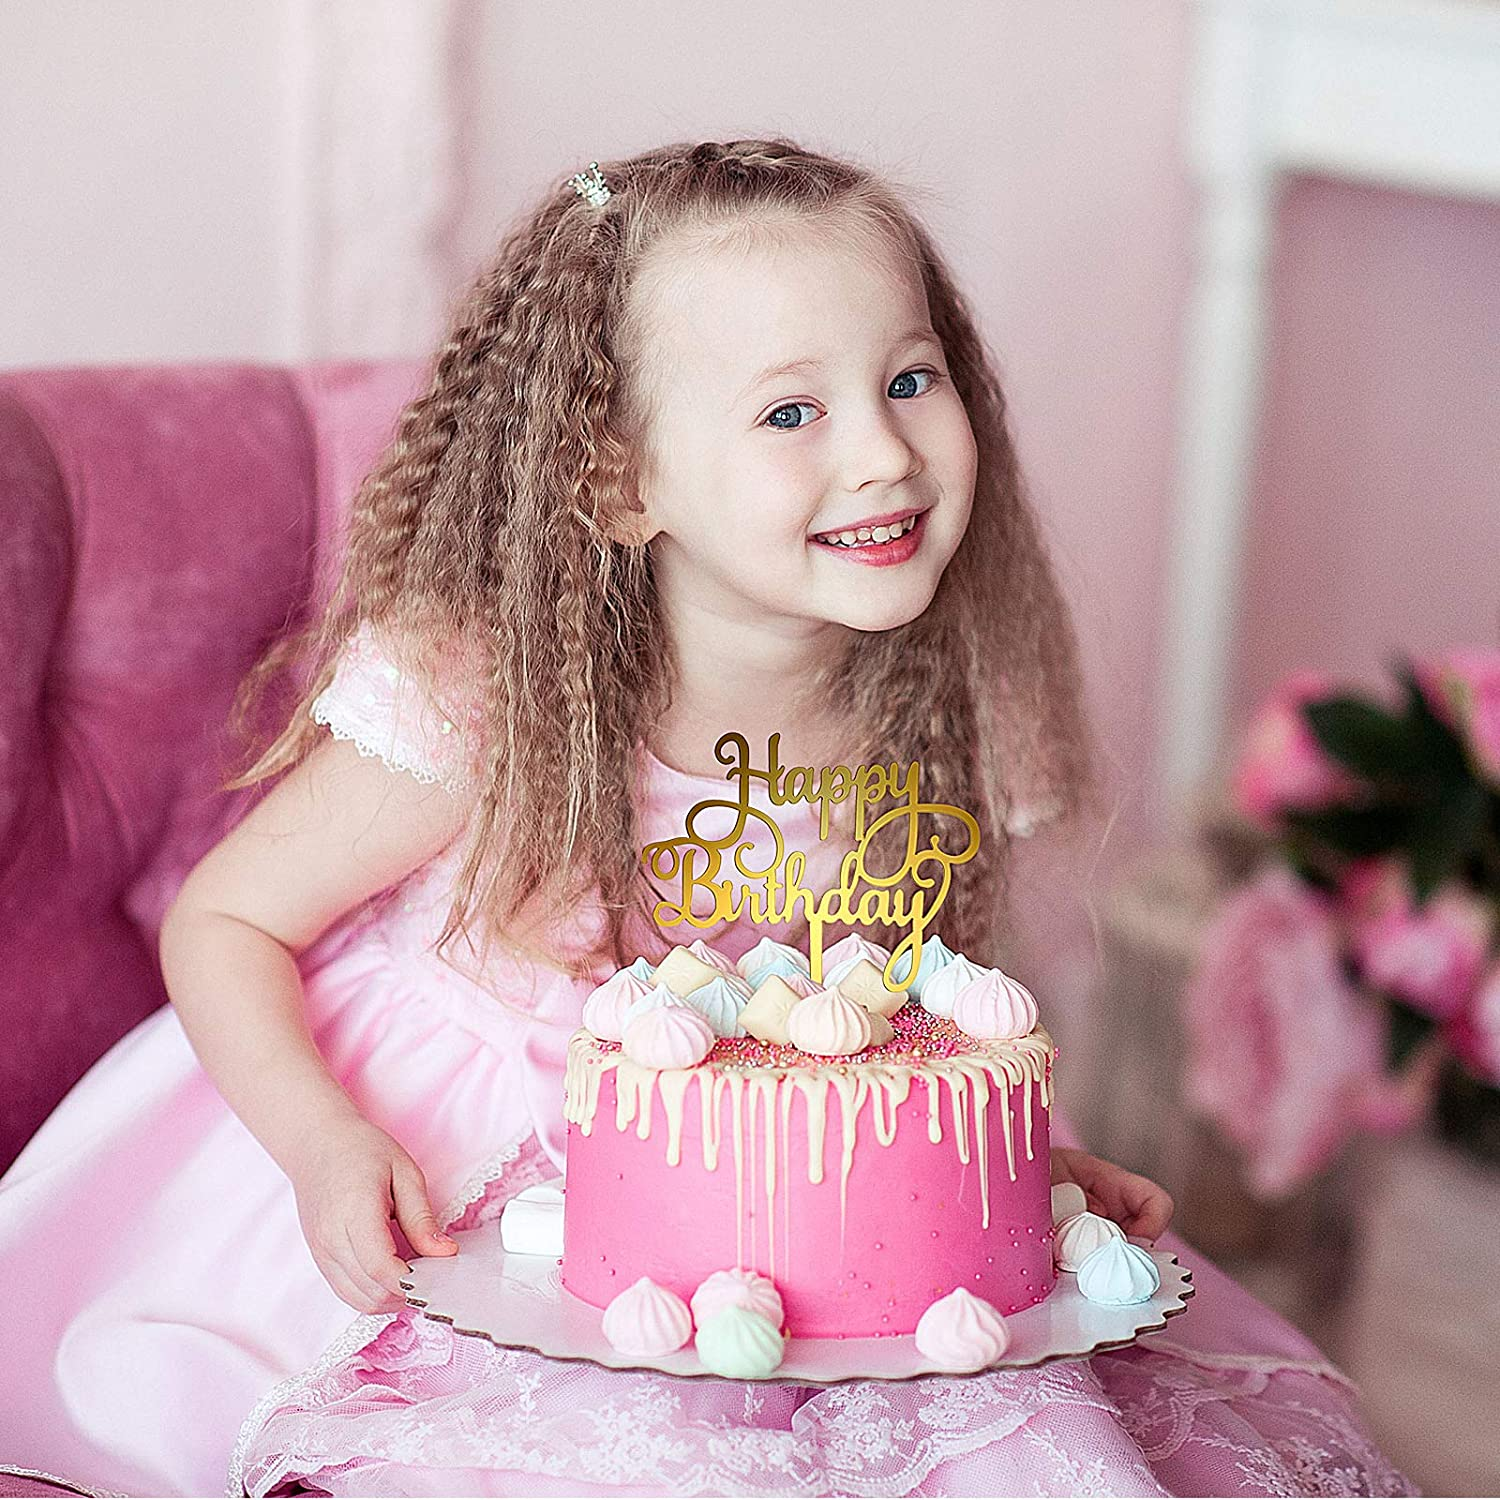 6 Styles 12 Pieces Happy Birthday Cake Topper Acrylic Gold Birthday Cupcake Topper Cake Pick Decorations for Birthday Party Cake Desserts Pastries